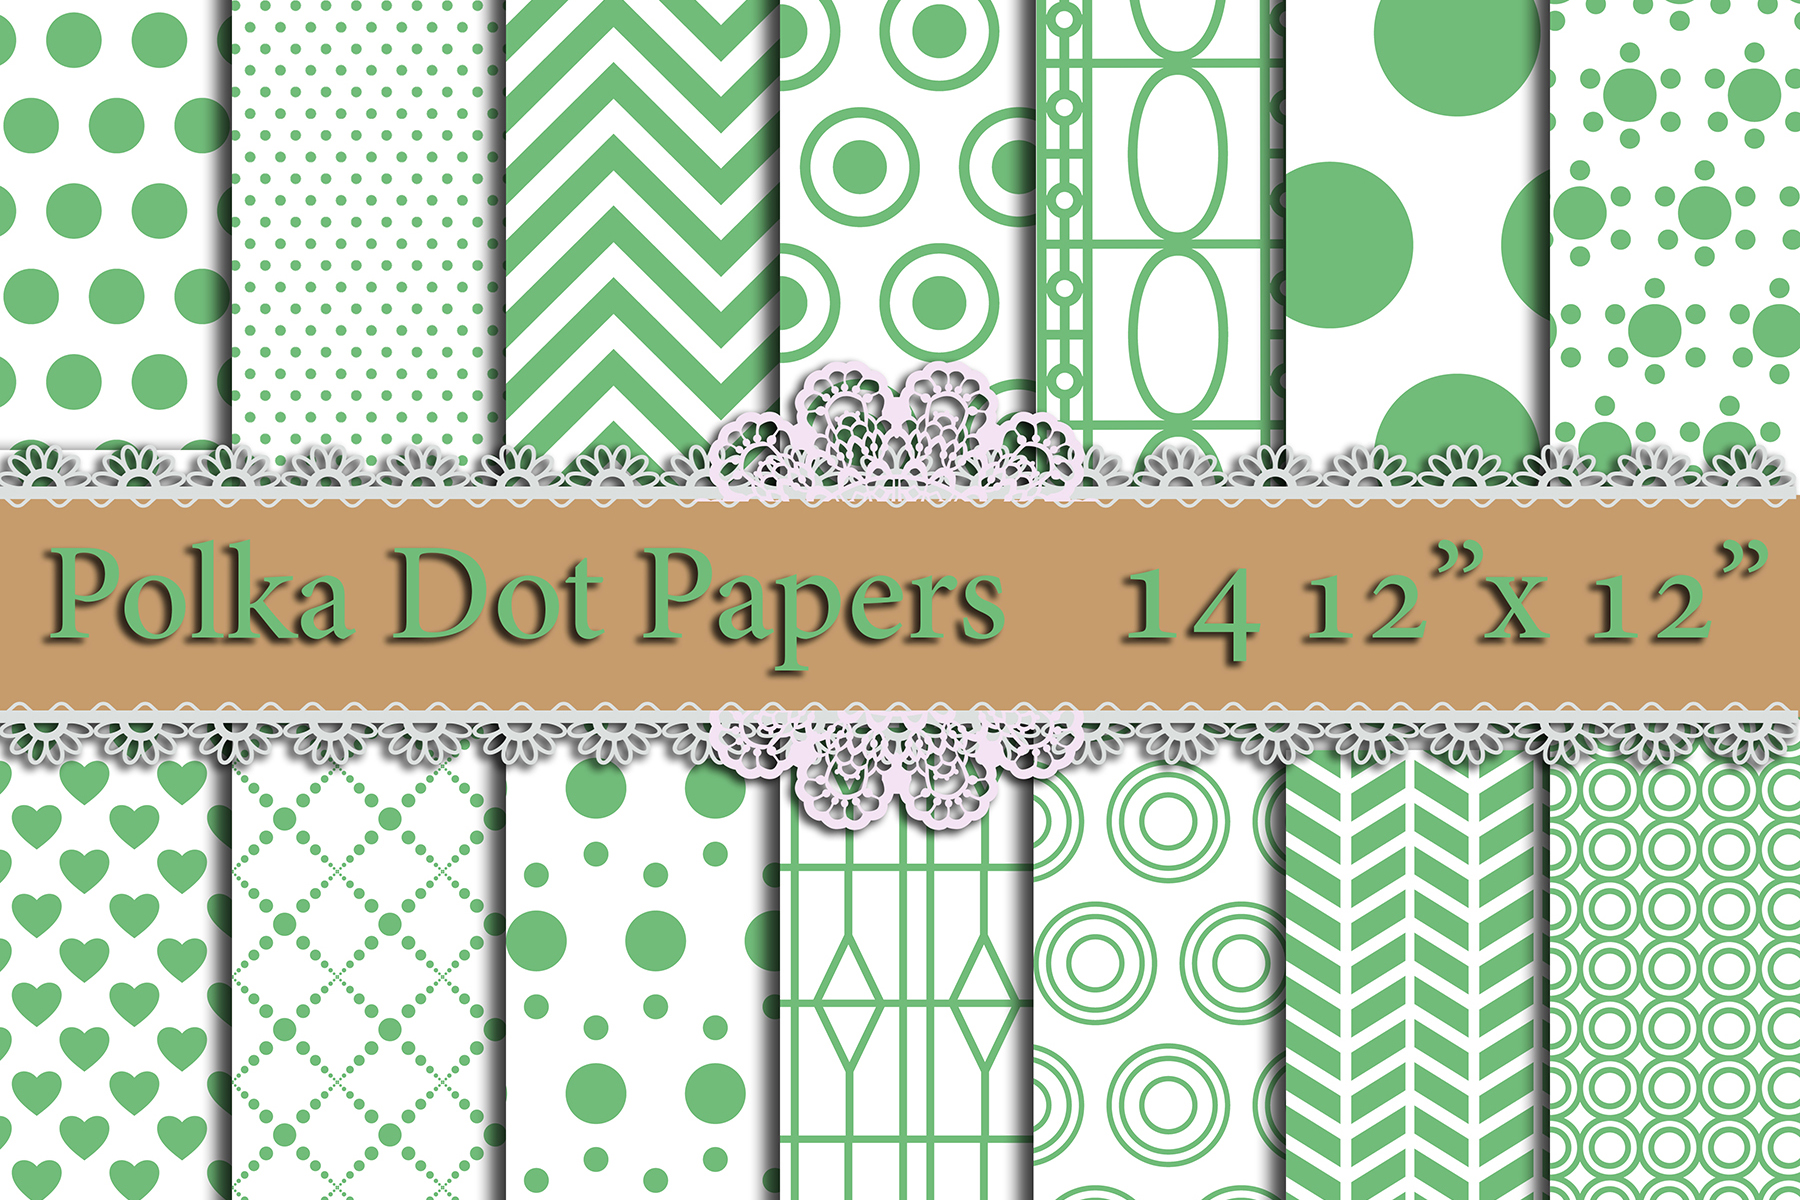 Green Polka Dot Digital Paper,POLKA DOT Pattern Printable Patterns Graphic Backgrounds By prettydesignstudio